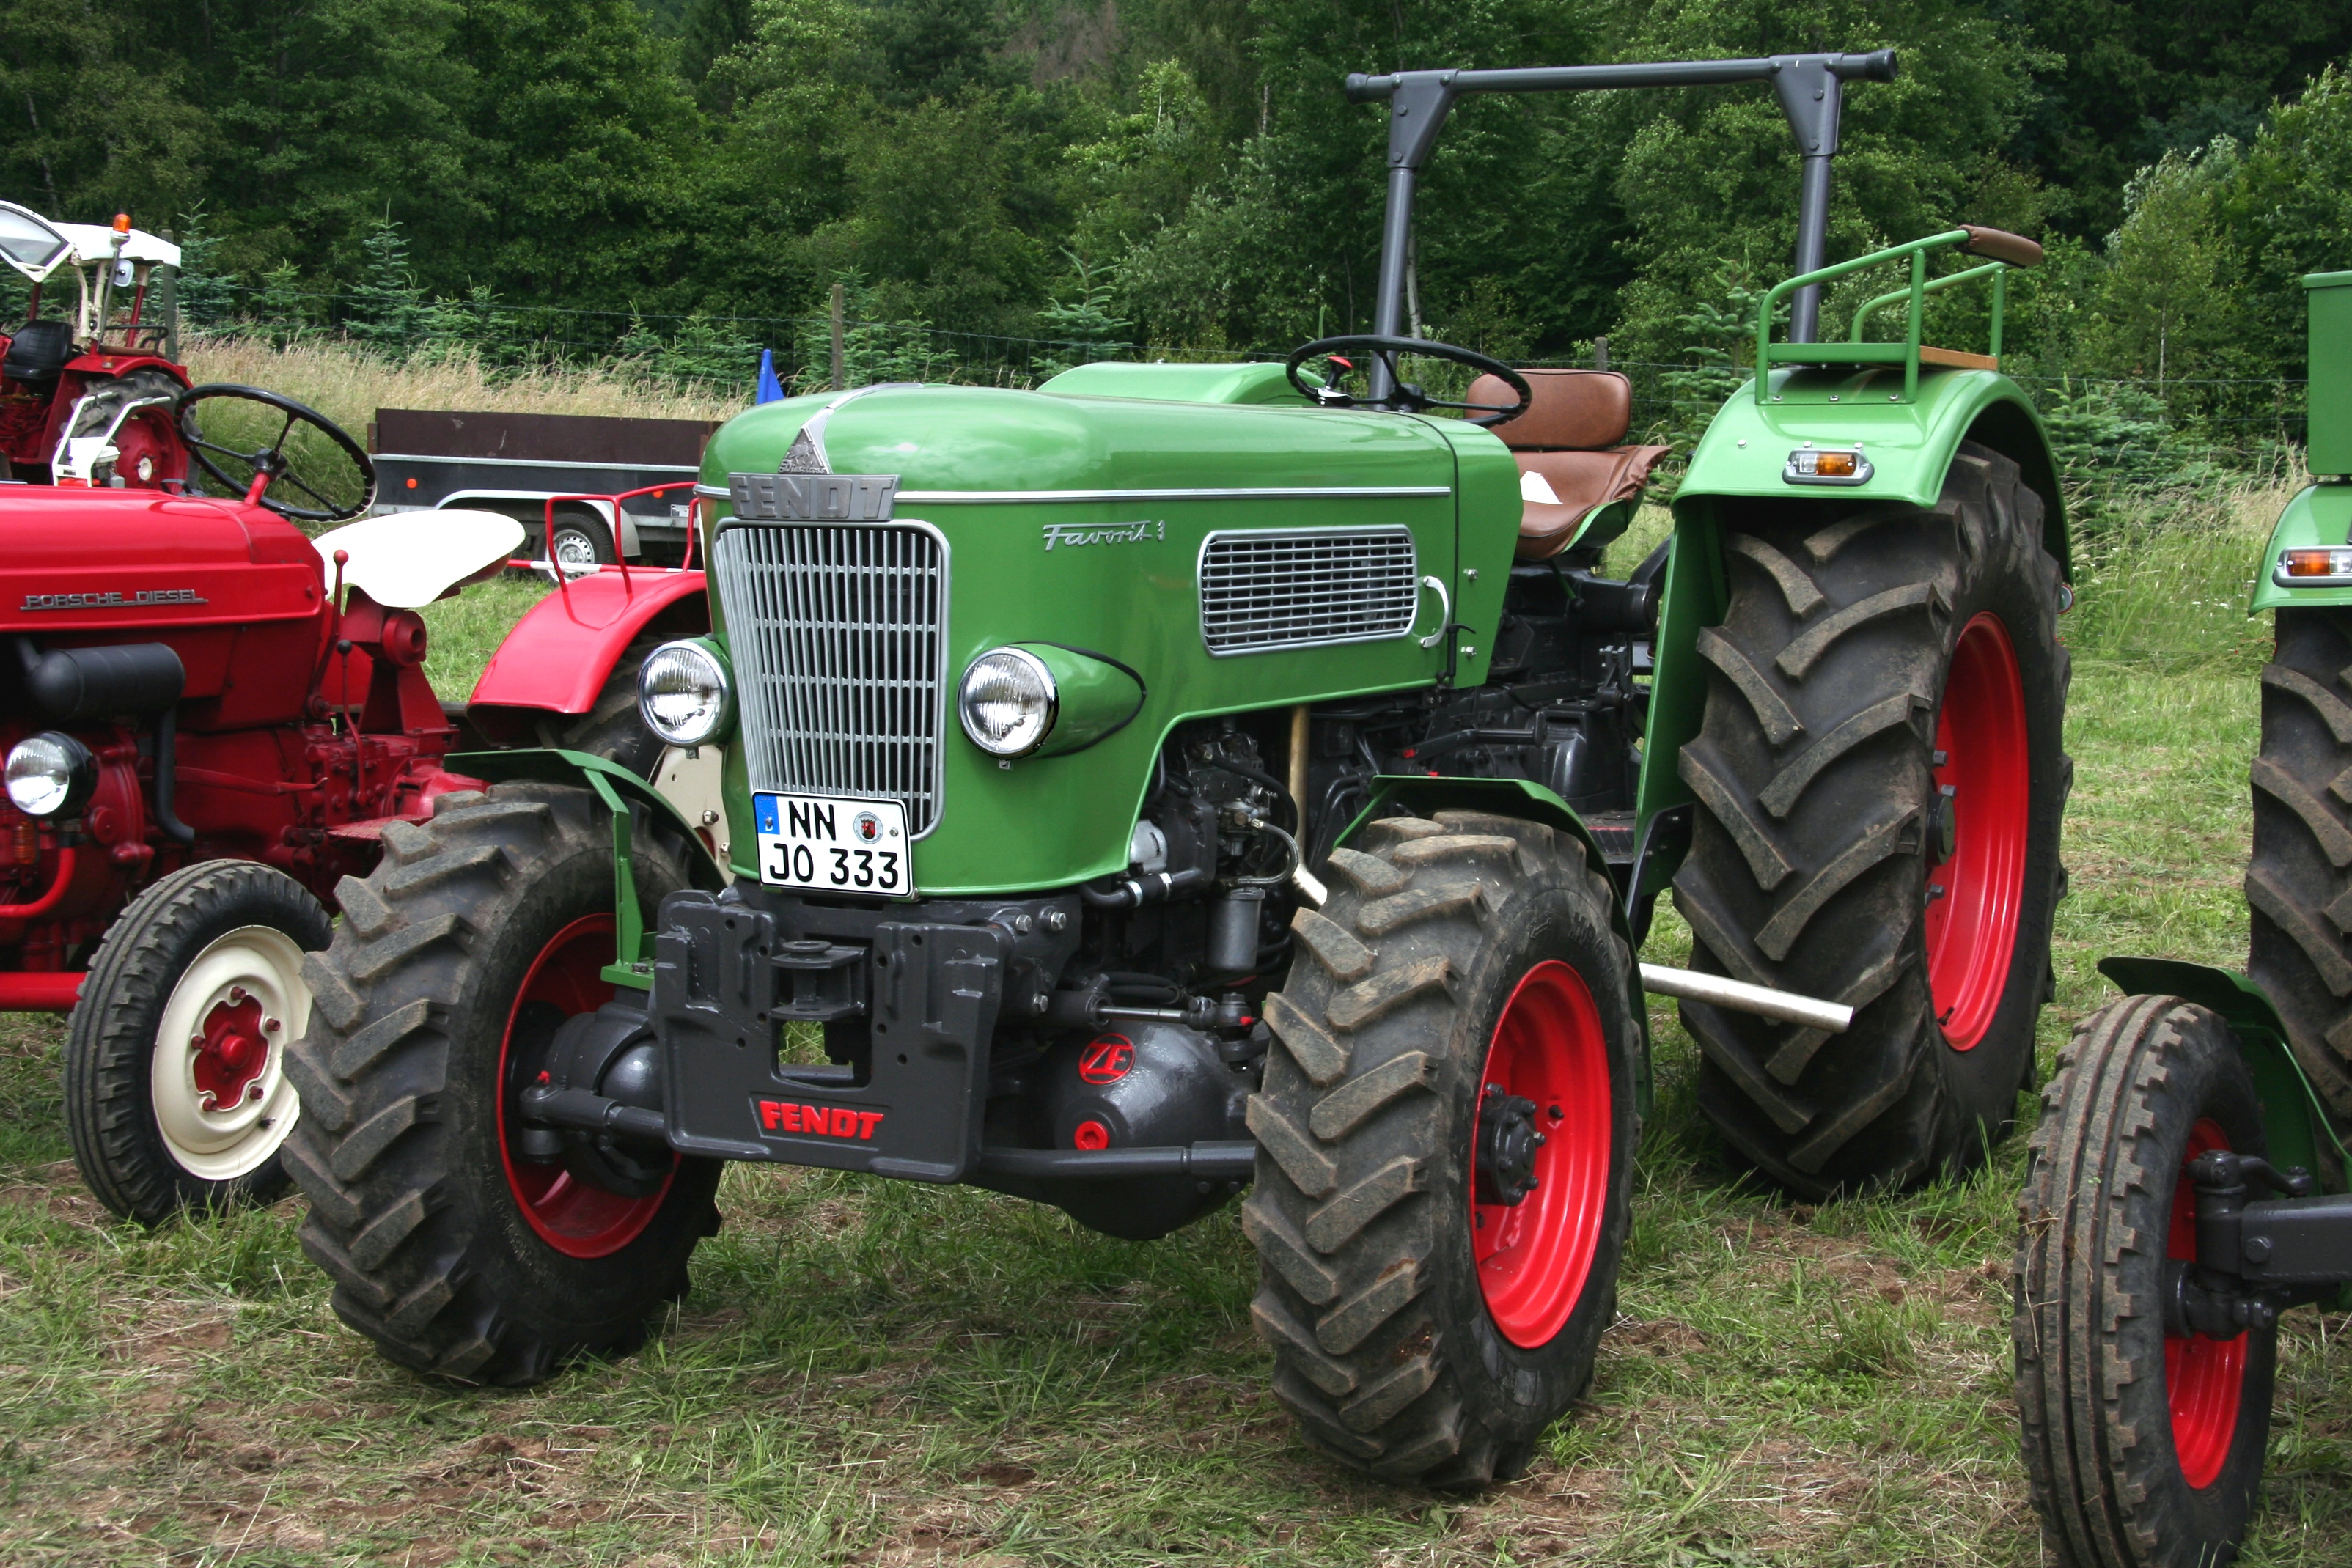 Fendt farmer photo - 3